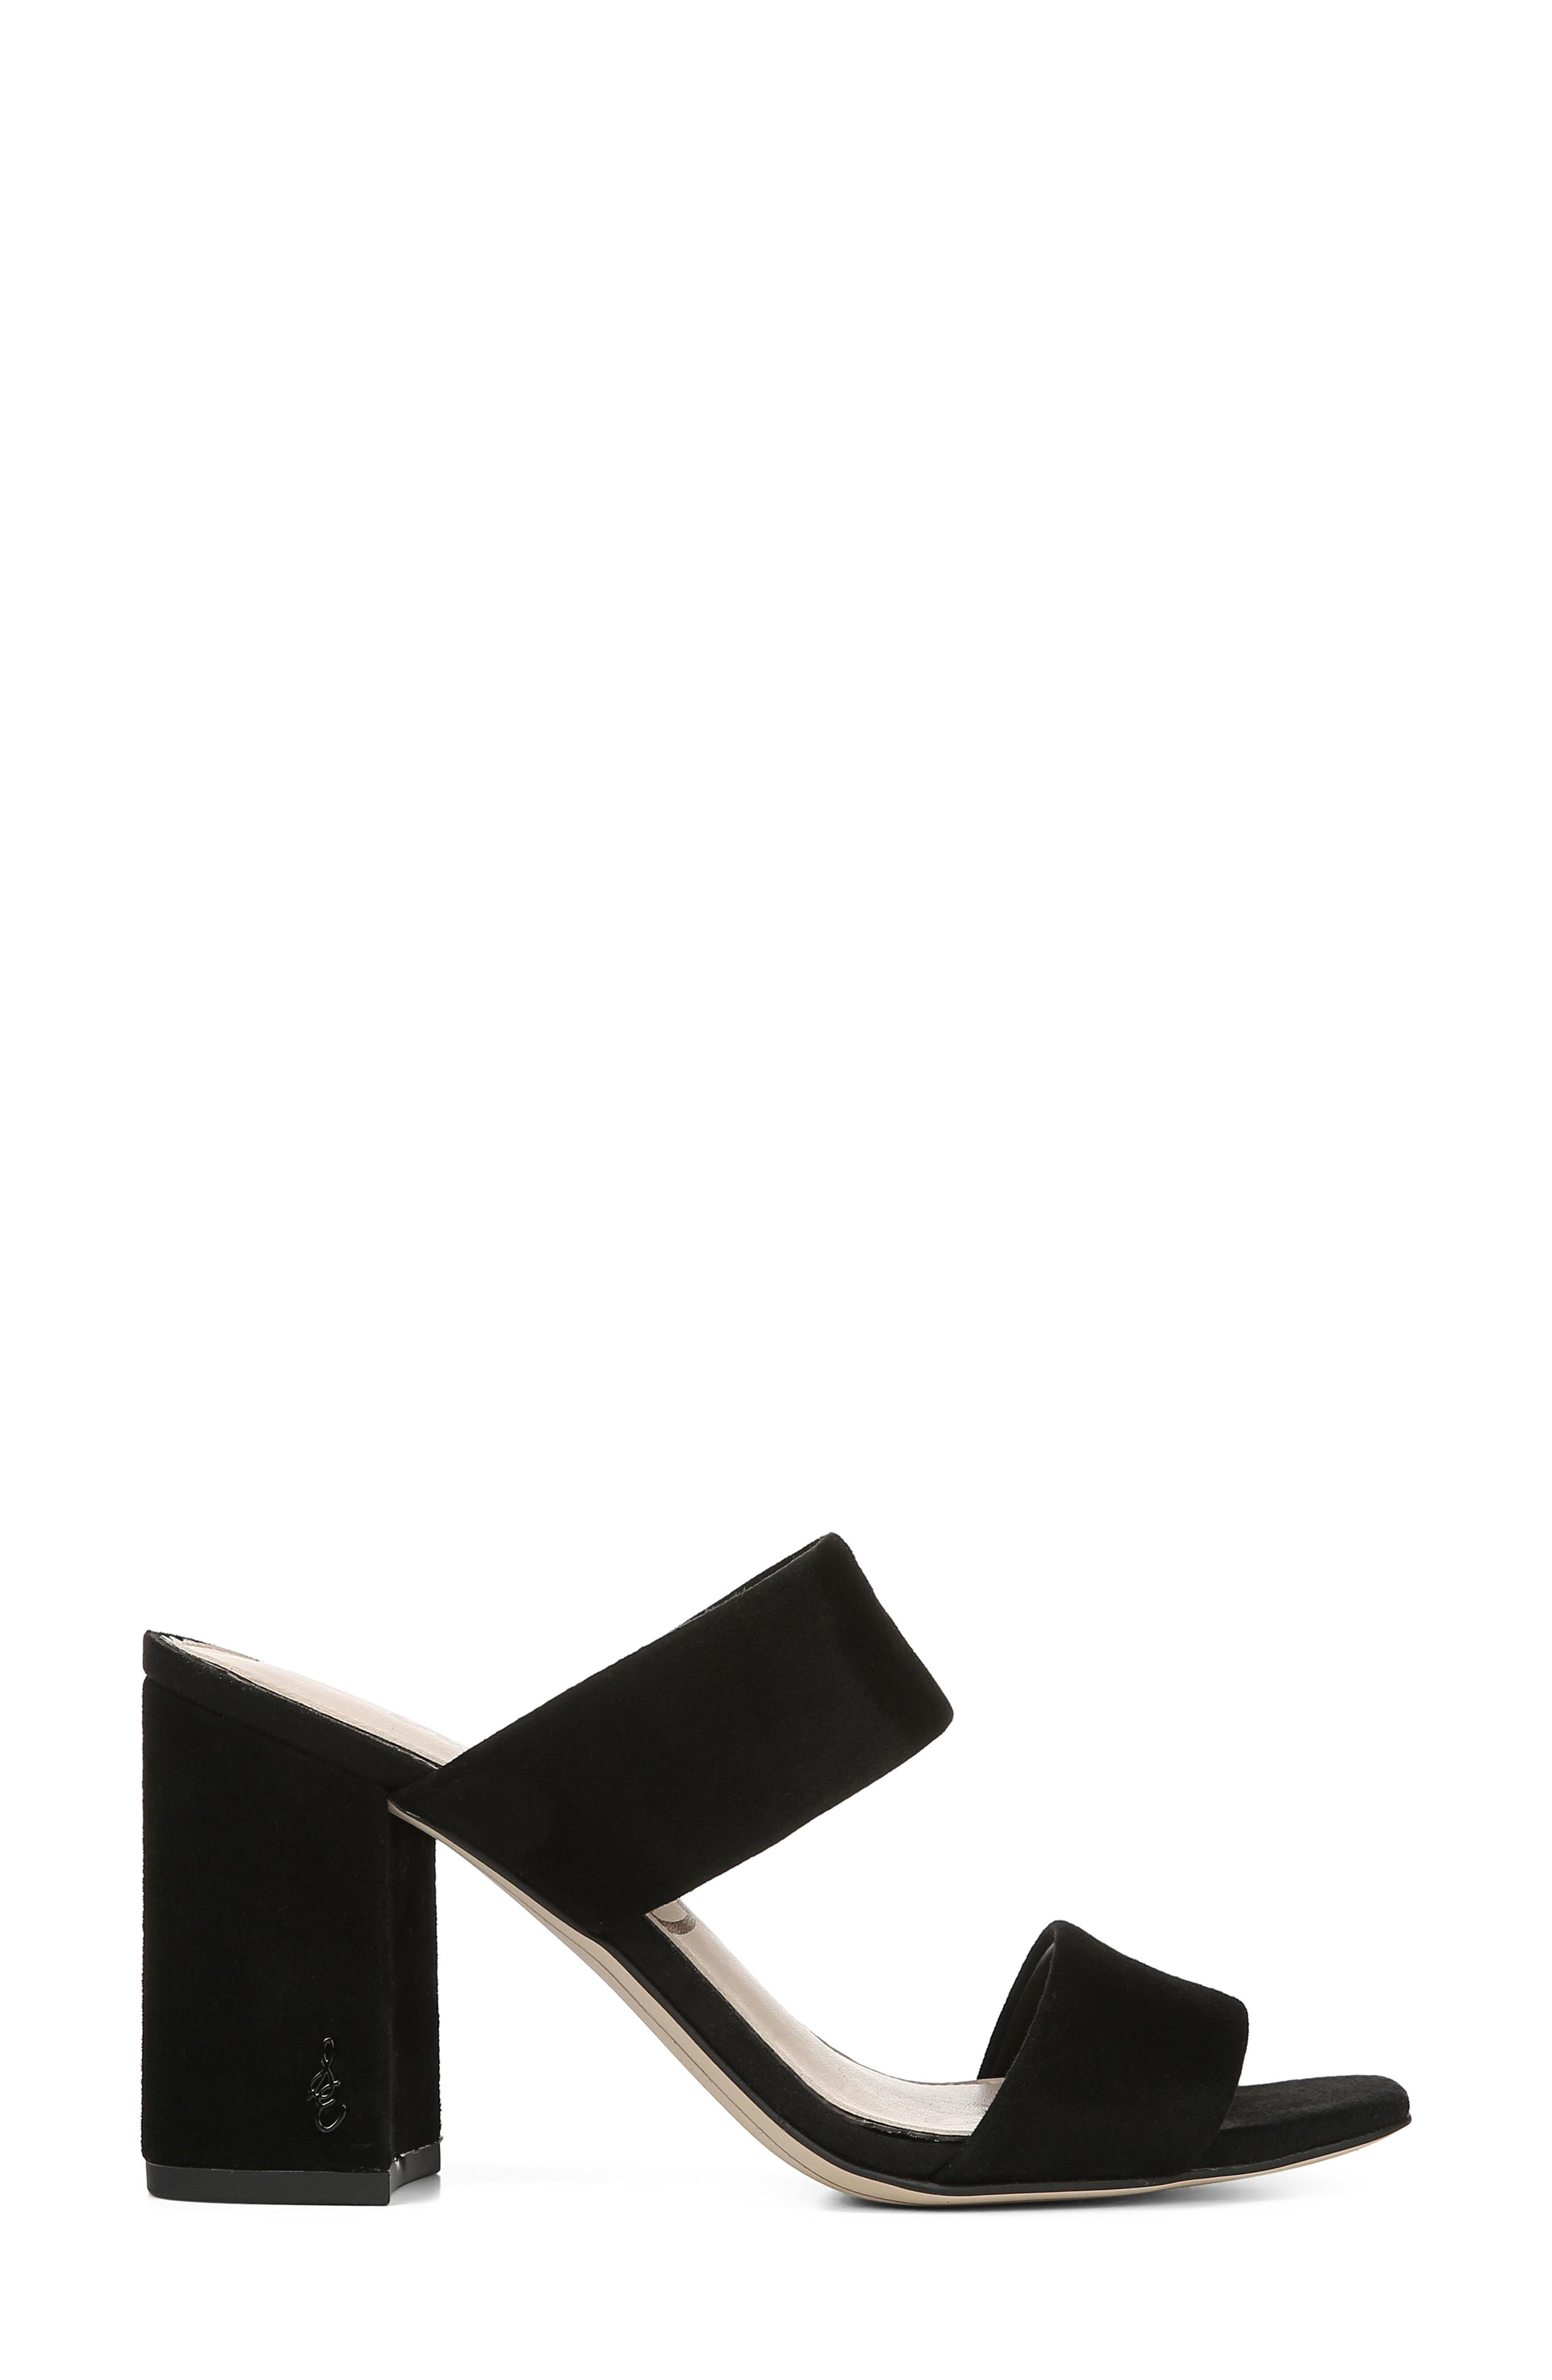 SAM EDELMAN, Delaney Sandal, Alternate thumbnail 3, color, BLACK SUEDE